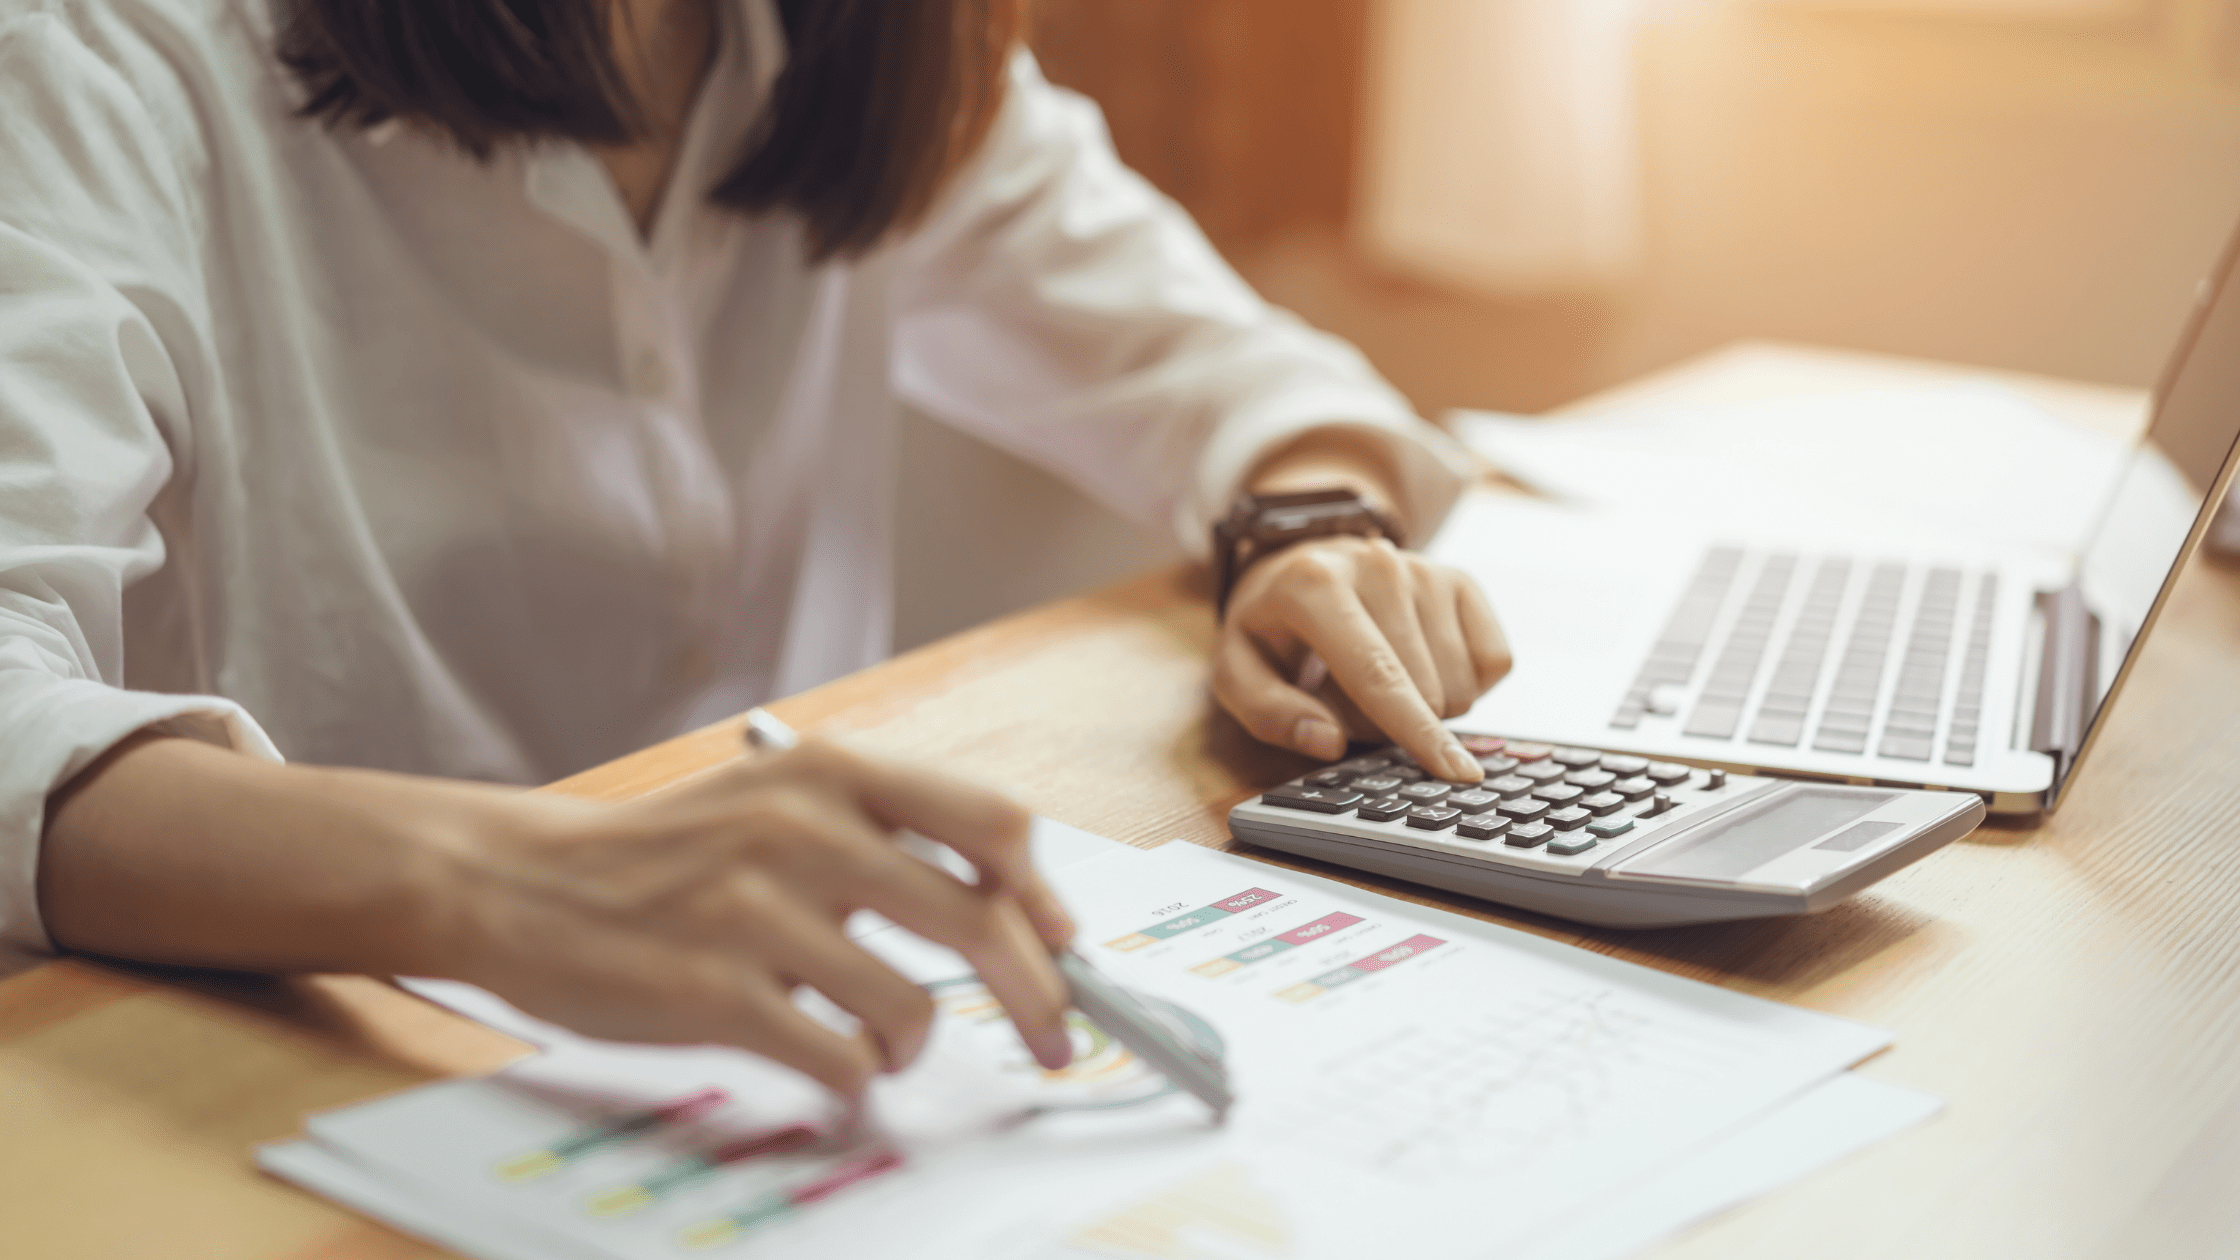 payroll-services-page-banner-woman-calculating-payroll-